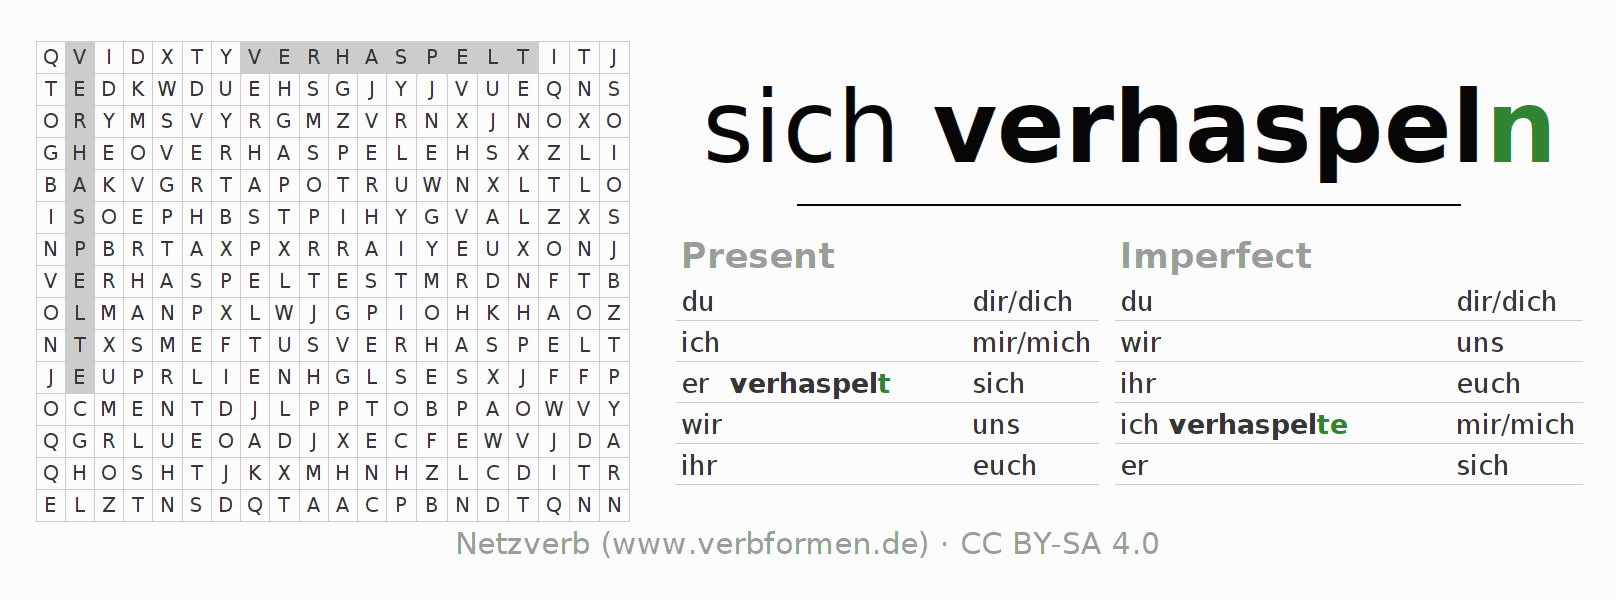 Word search puzzle for the conjugation of the verb sich verhaspeln